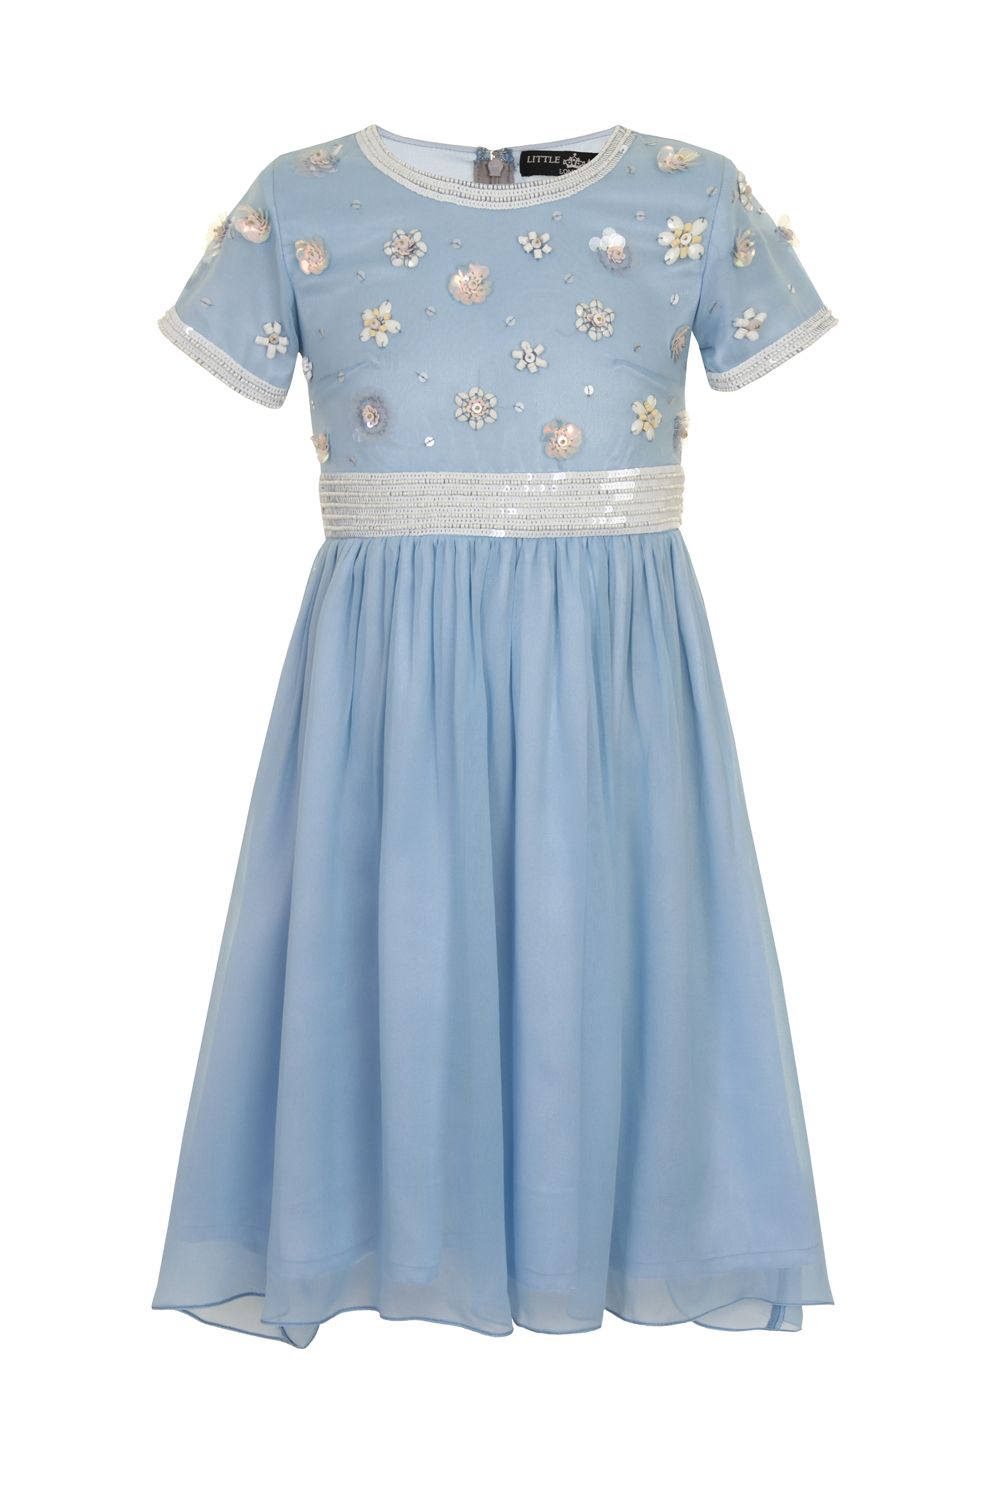 Girls embellished bodice dress